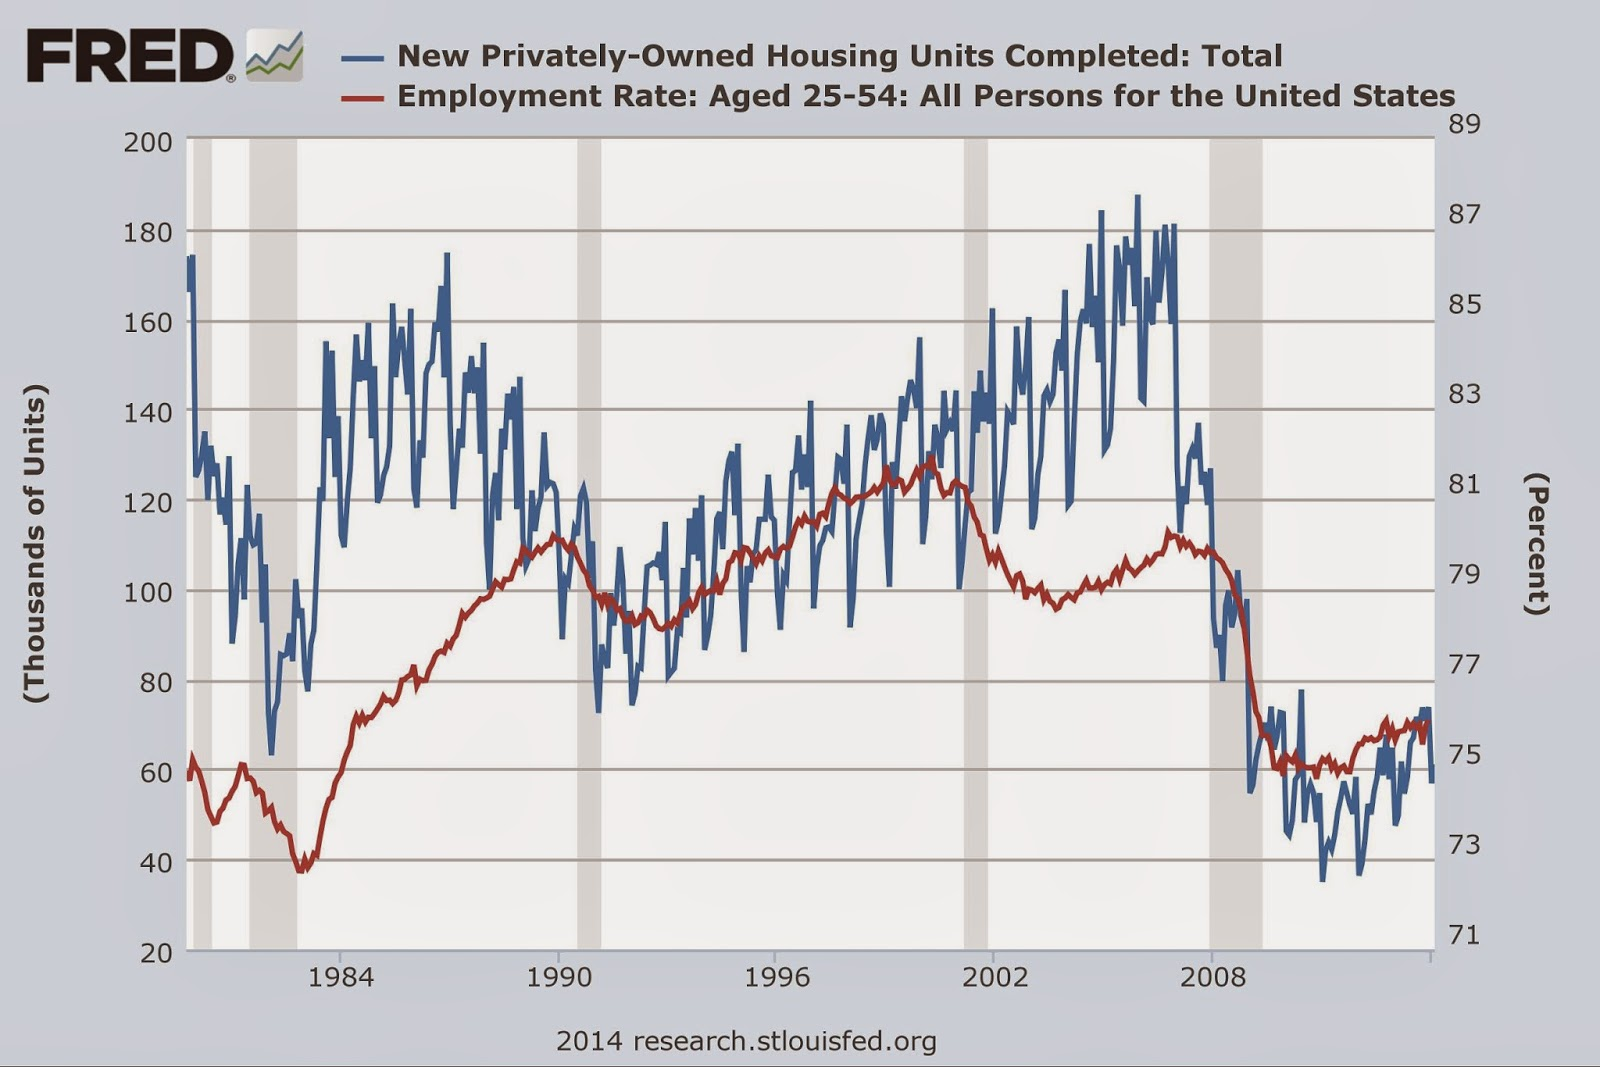 Chart of New Privately-Owned Housing United Completed: Total and Unemployment Rate: Aged 25-54: All Persons for the United States, 1980s to present